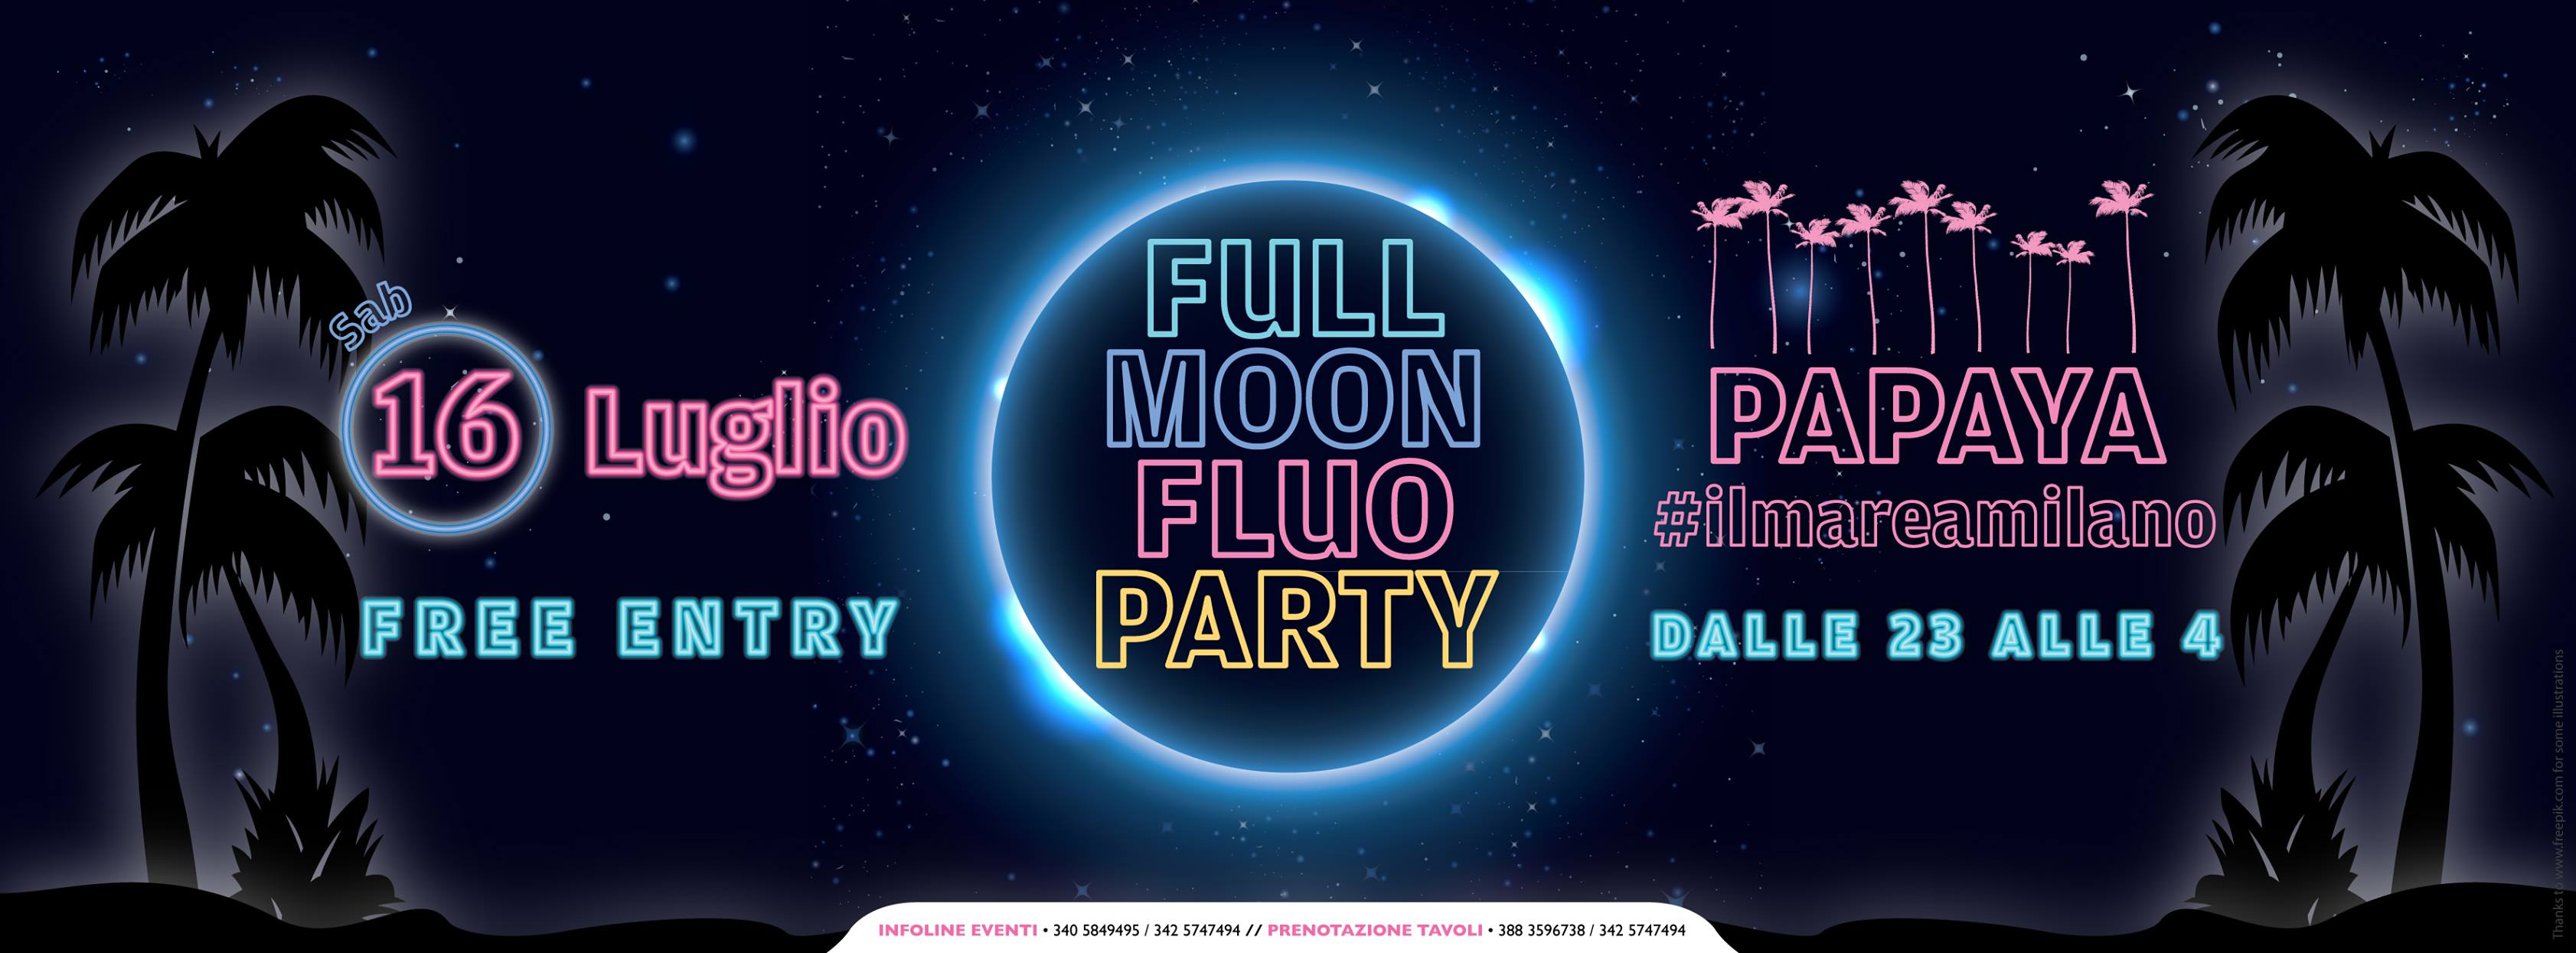 Full Moon Fluo Party